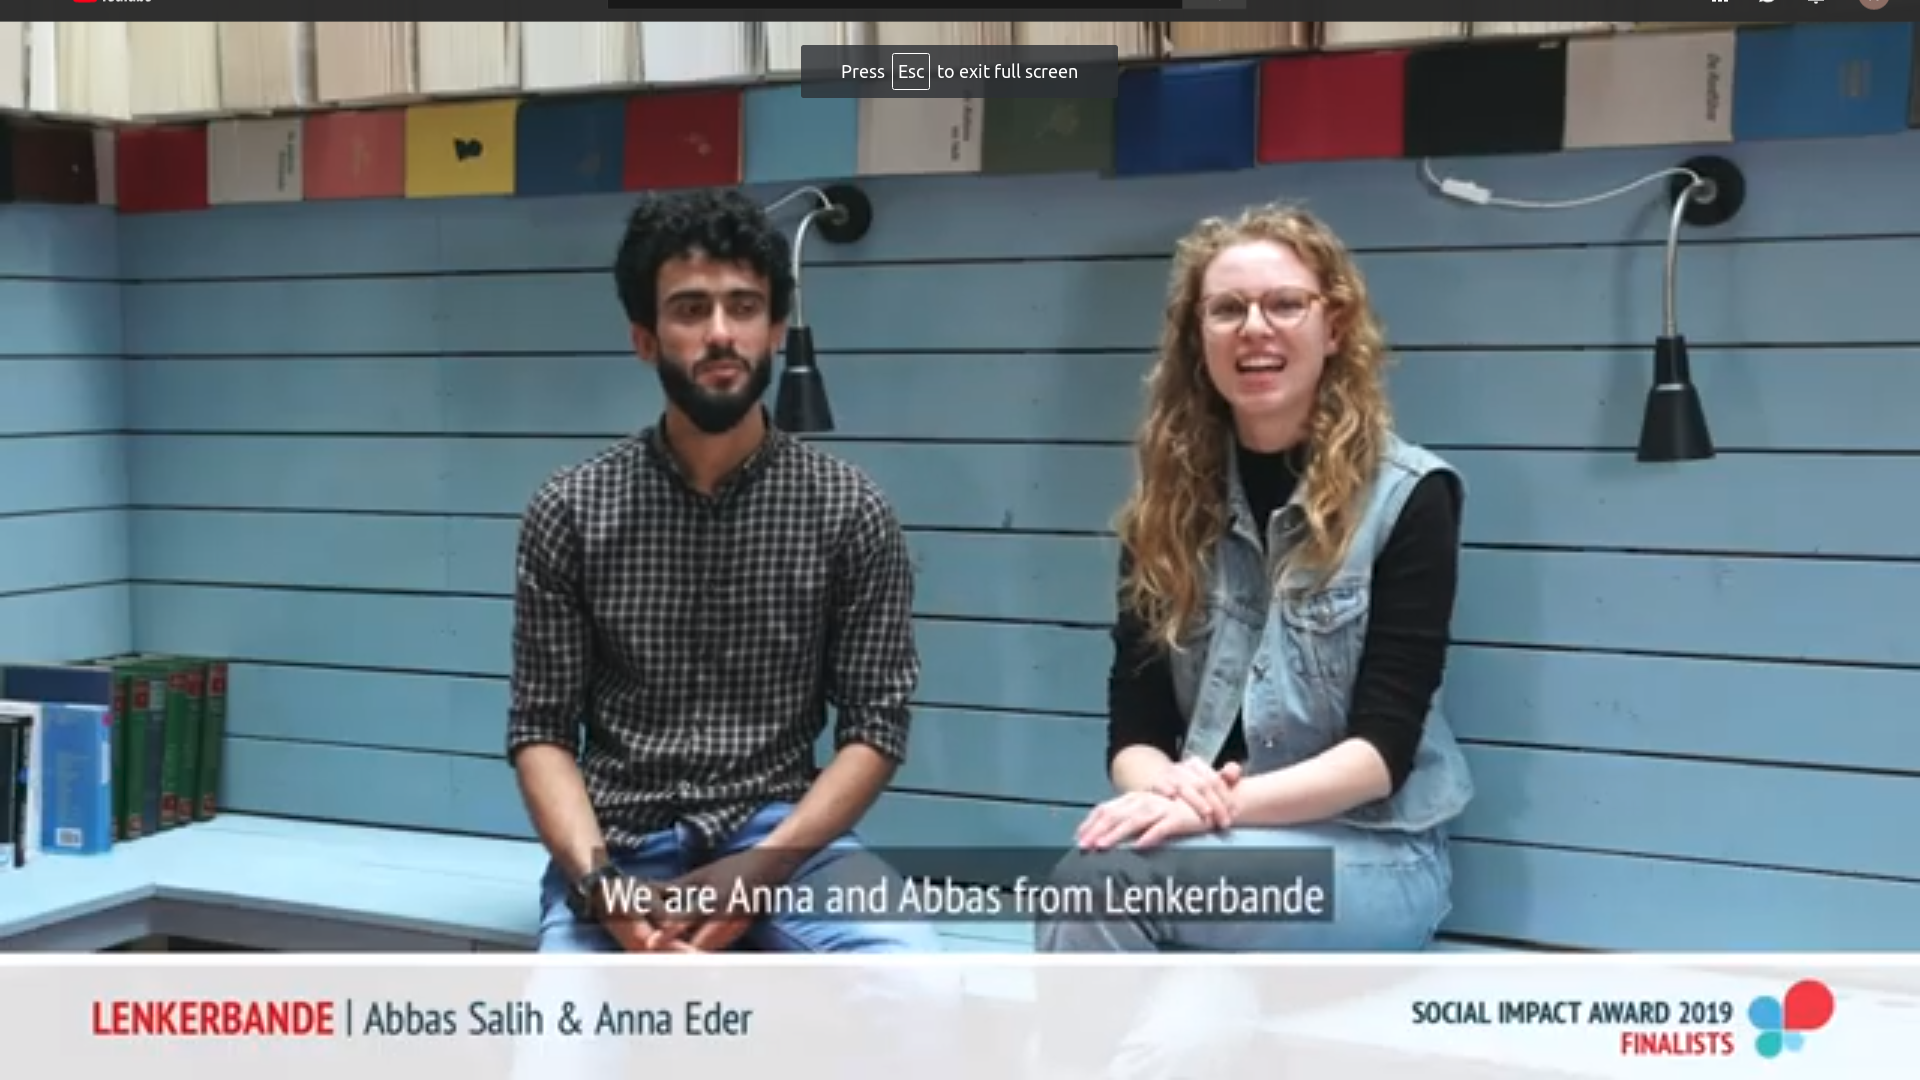 Anna und Abbas beim Video-Interview